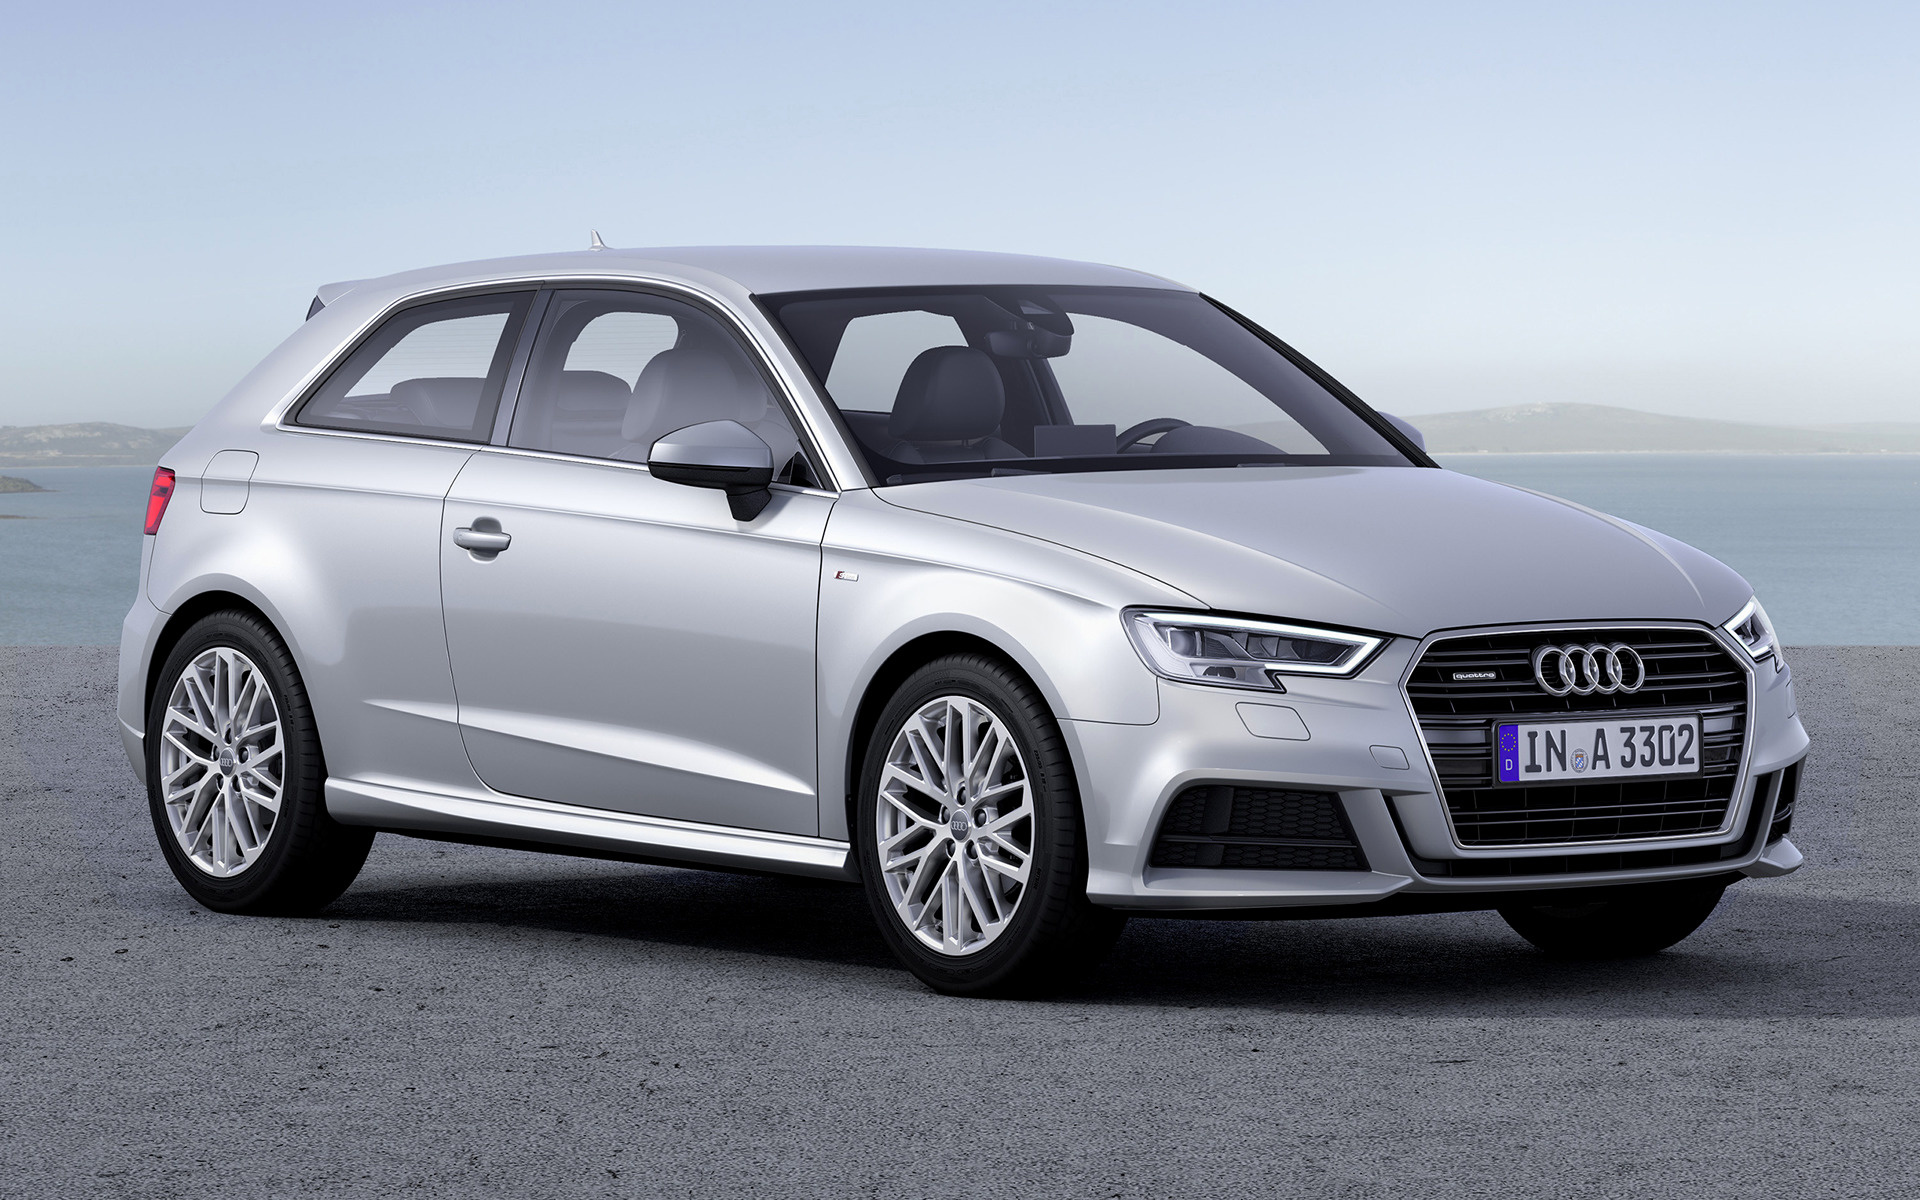 2016 Audi A3 S line - Wallpapers and HD Images | Car Pixel